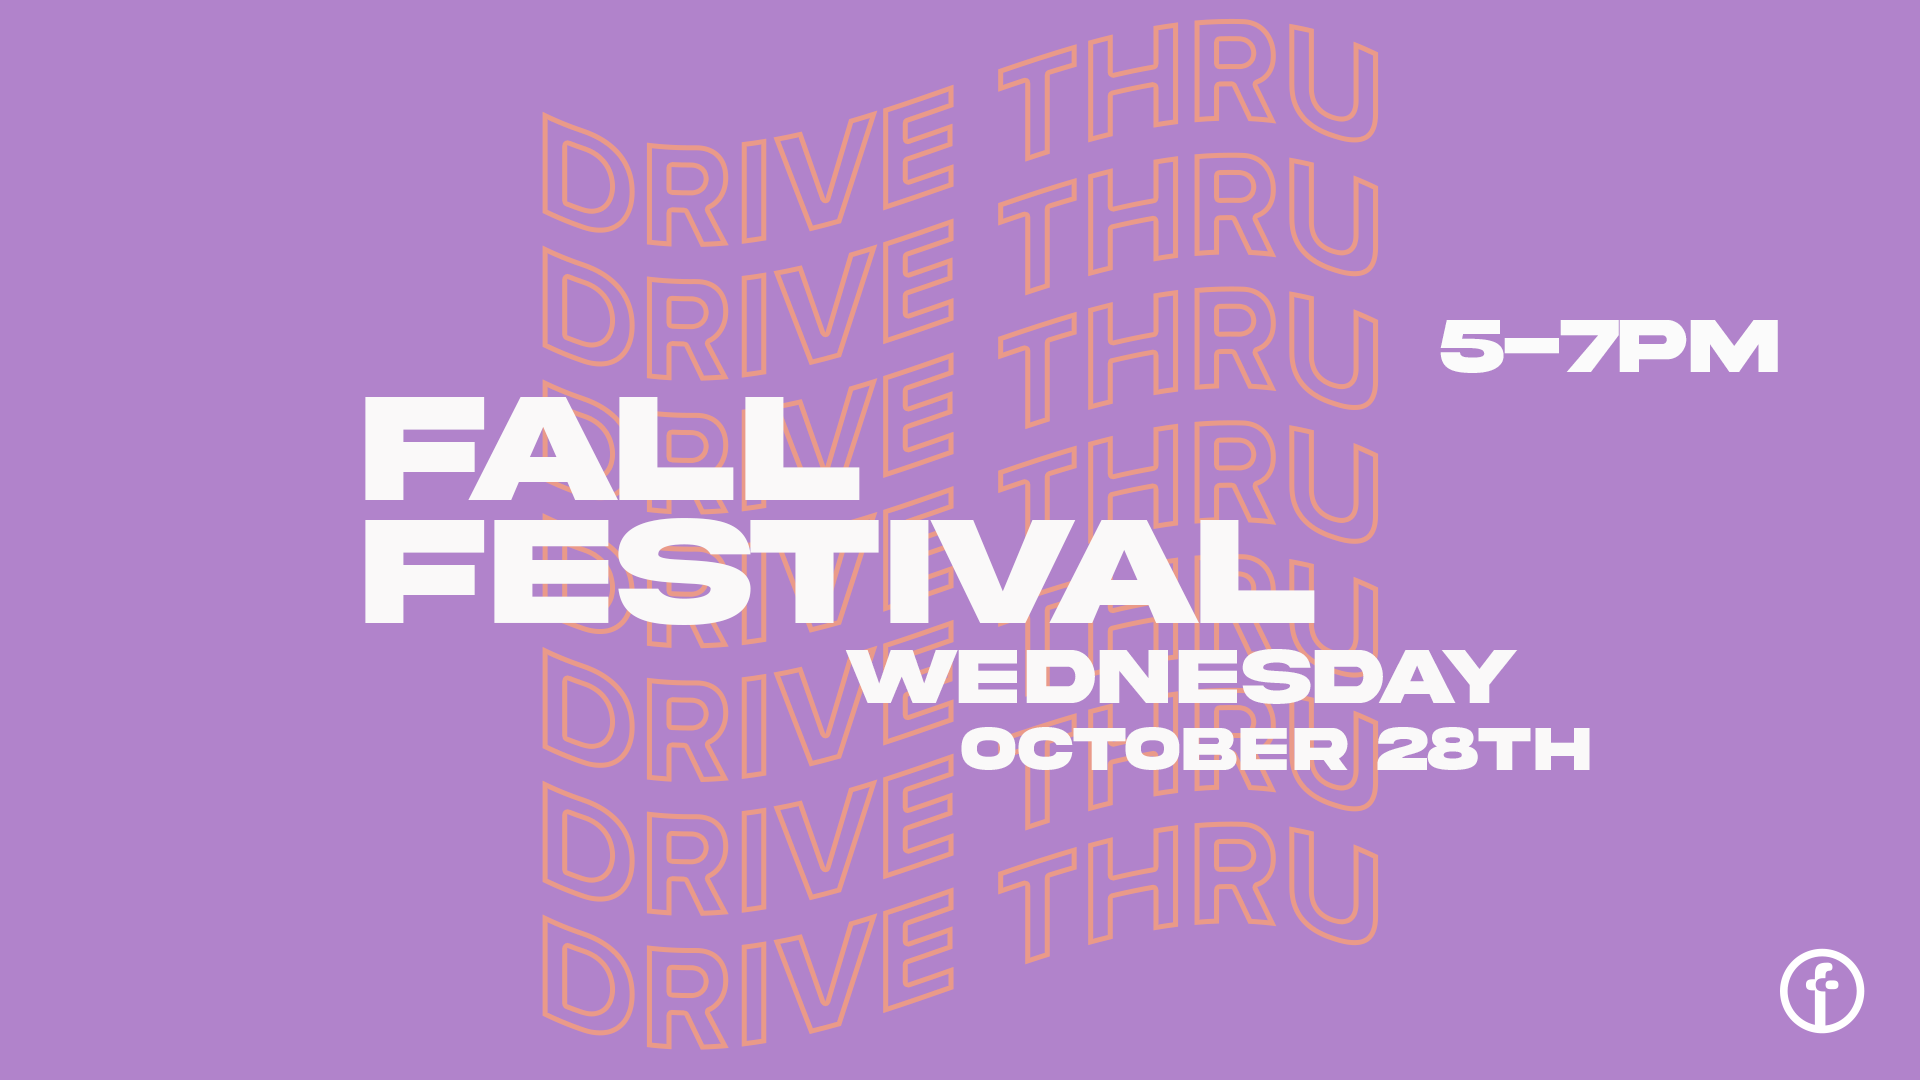 Fall Festival Drive-Thru at the Orange County campus